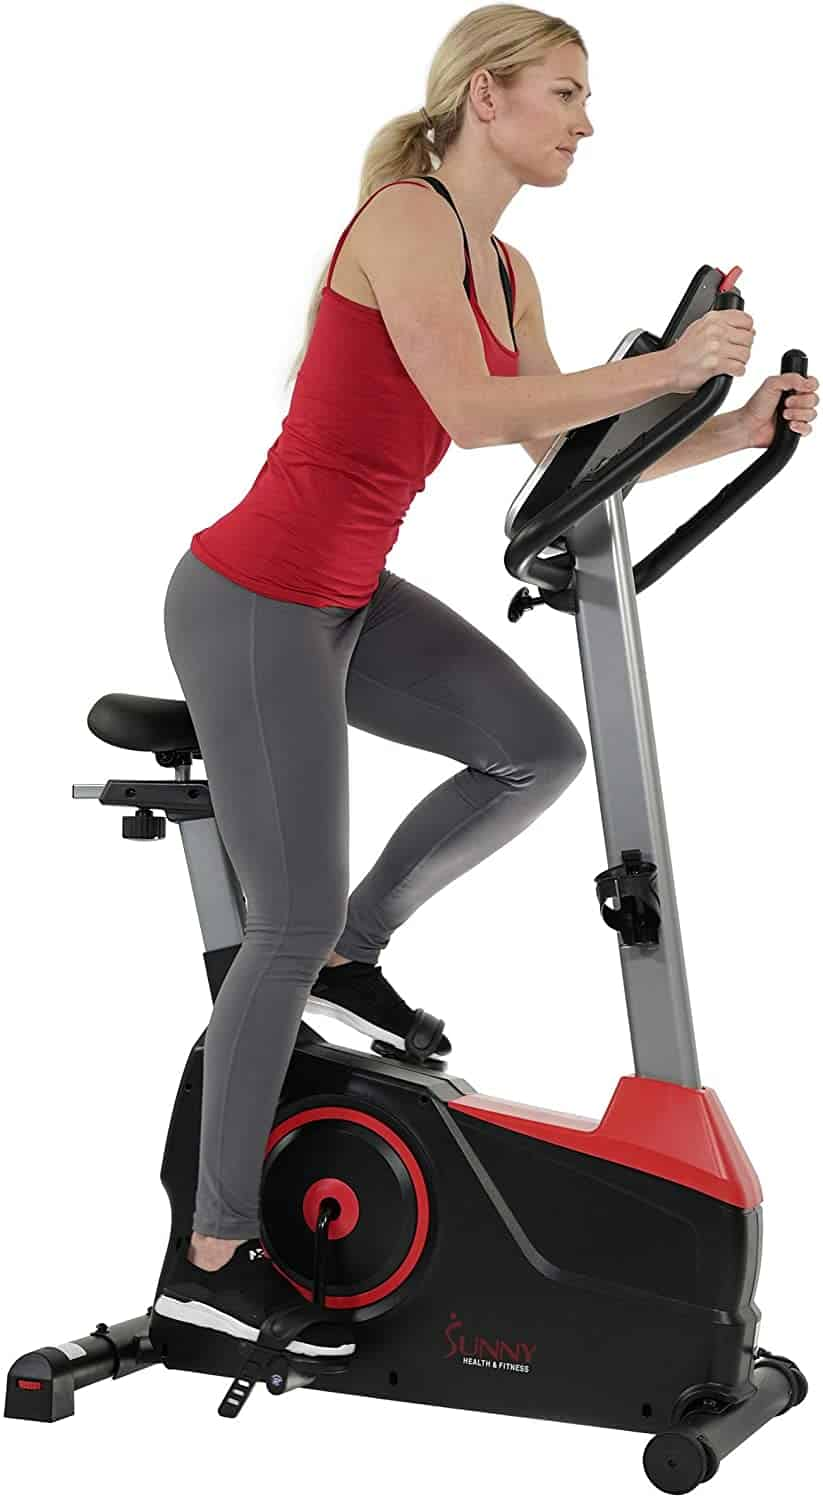 Sunny Health & Fitness Evo-Fit SF-B2969 Upright Bike